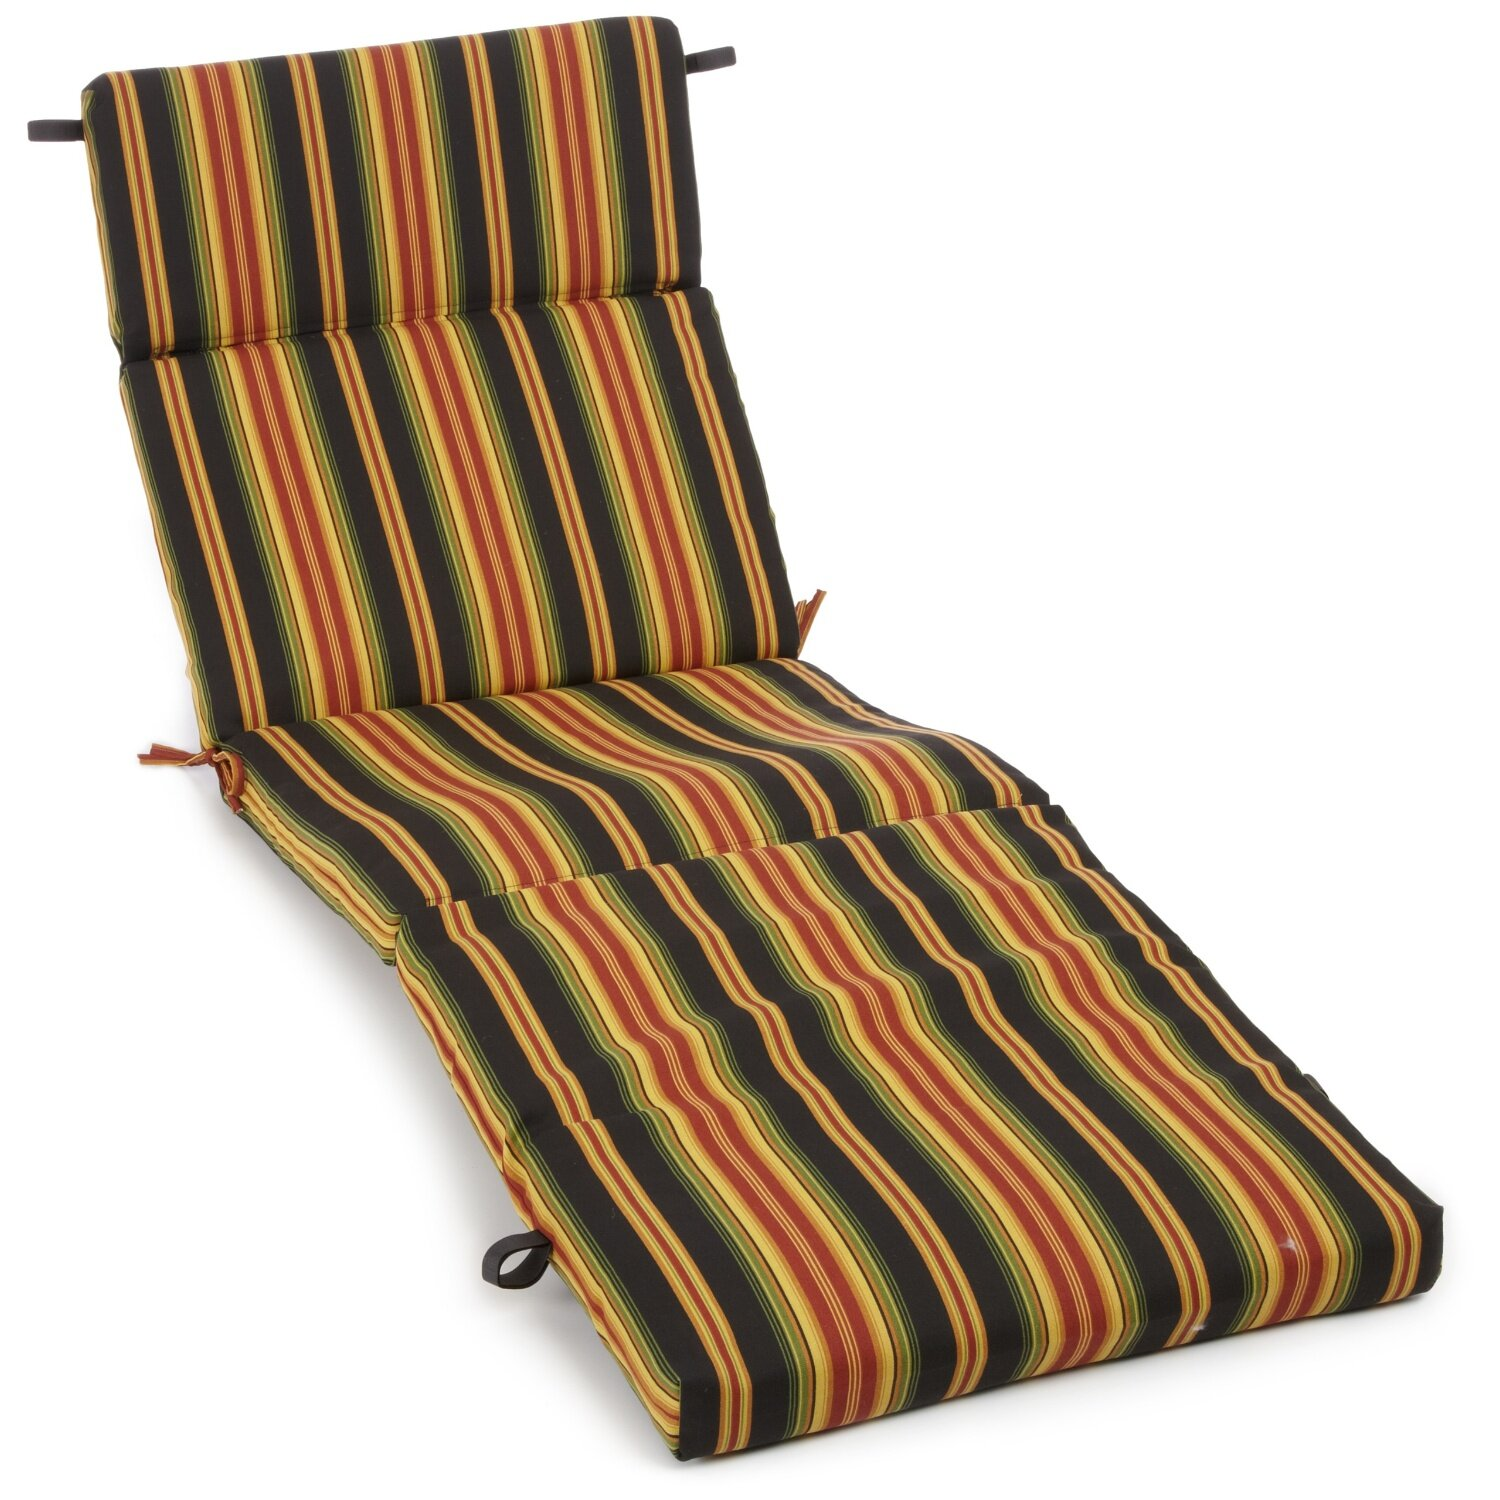 Blazing needles lyndhurst outdoor chaise lounge cushion for Blazing needles chaise cushion